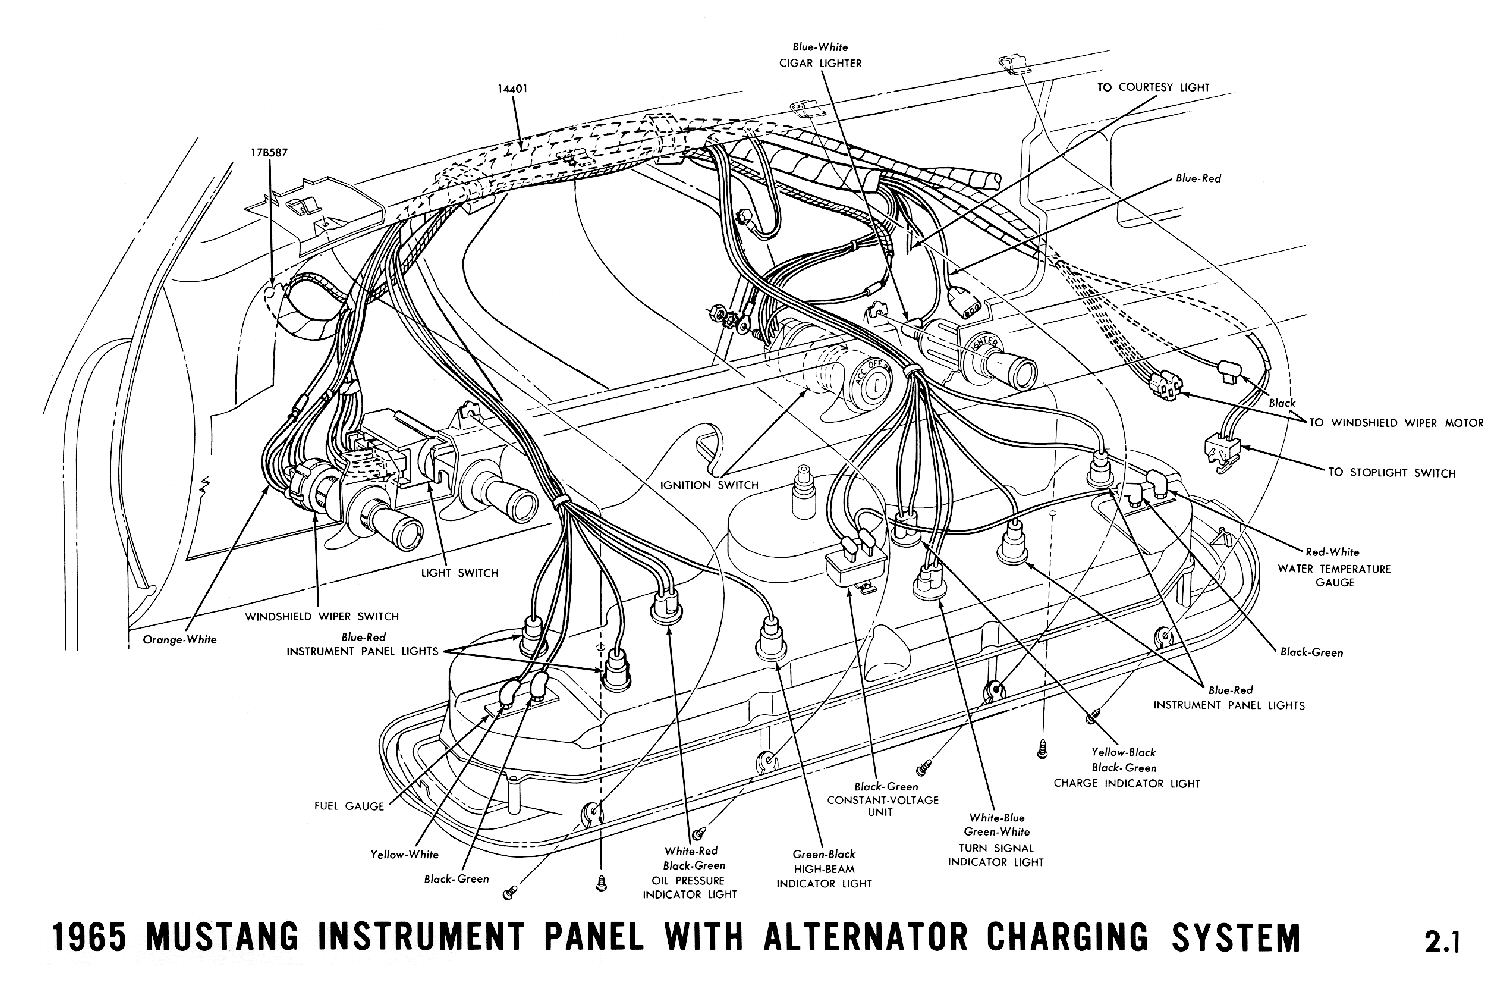 1965 mustang wiring diagrams average joe restoration rh averagejoerestoration com 1965 mustang engine wiring harness 65 mustang wiring harness install